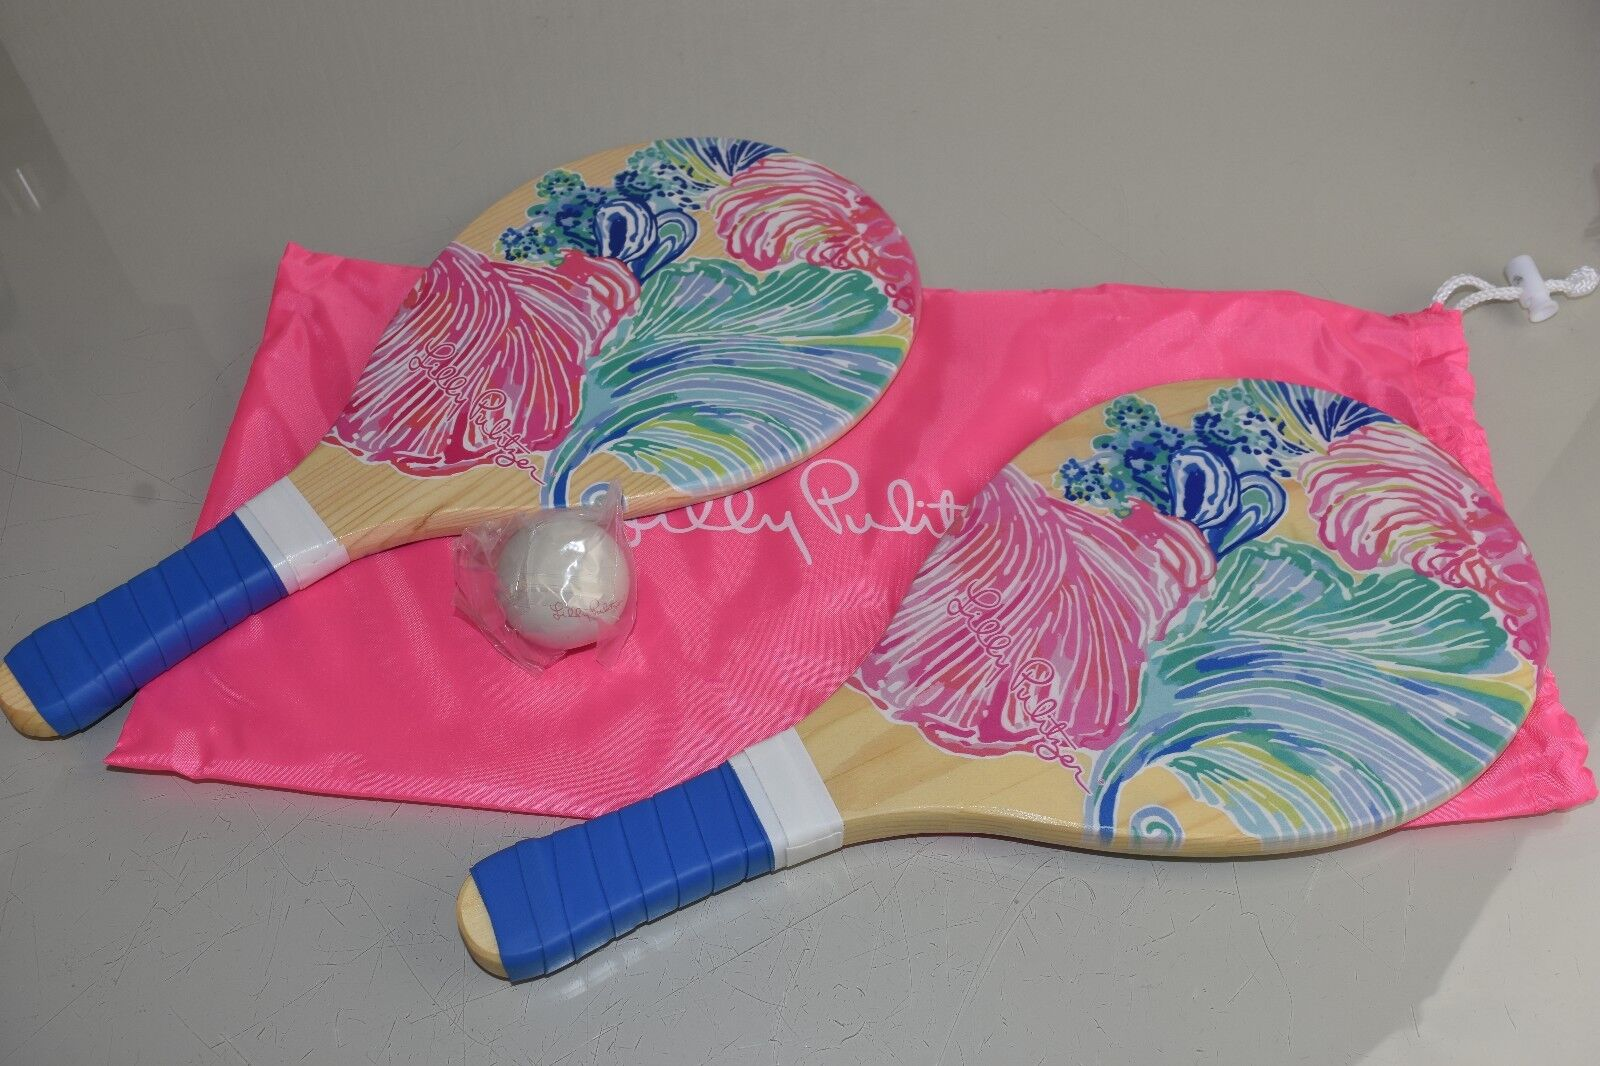 NEW Lilly Pulitzer 3 PC PADDLE BALL SET & CASE Multi Beach Please Paddles Pink